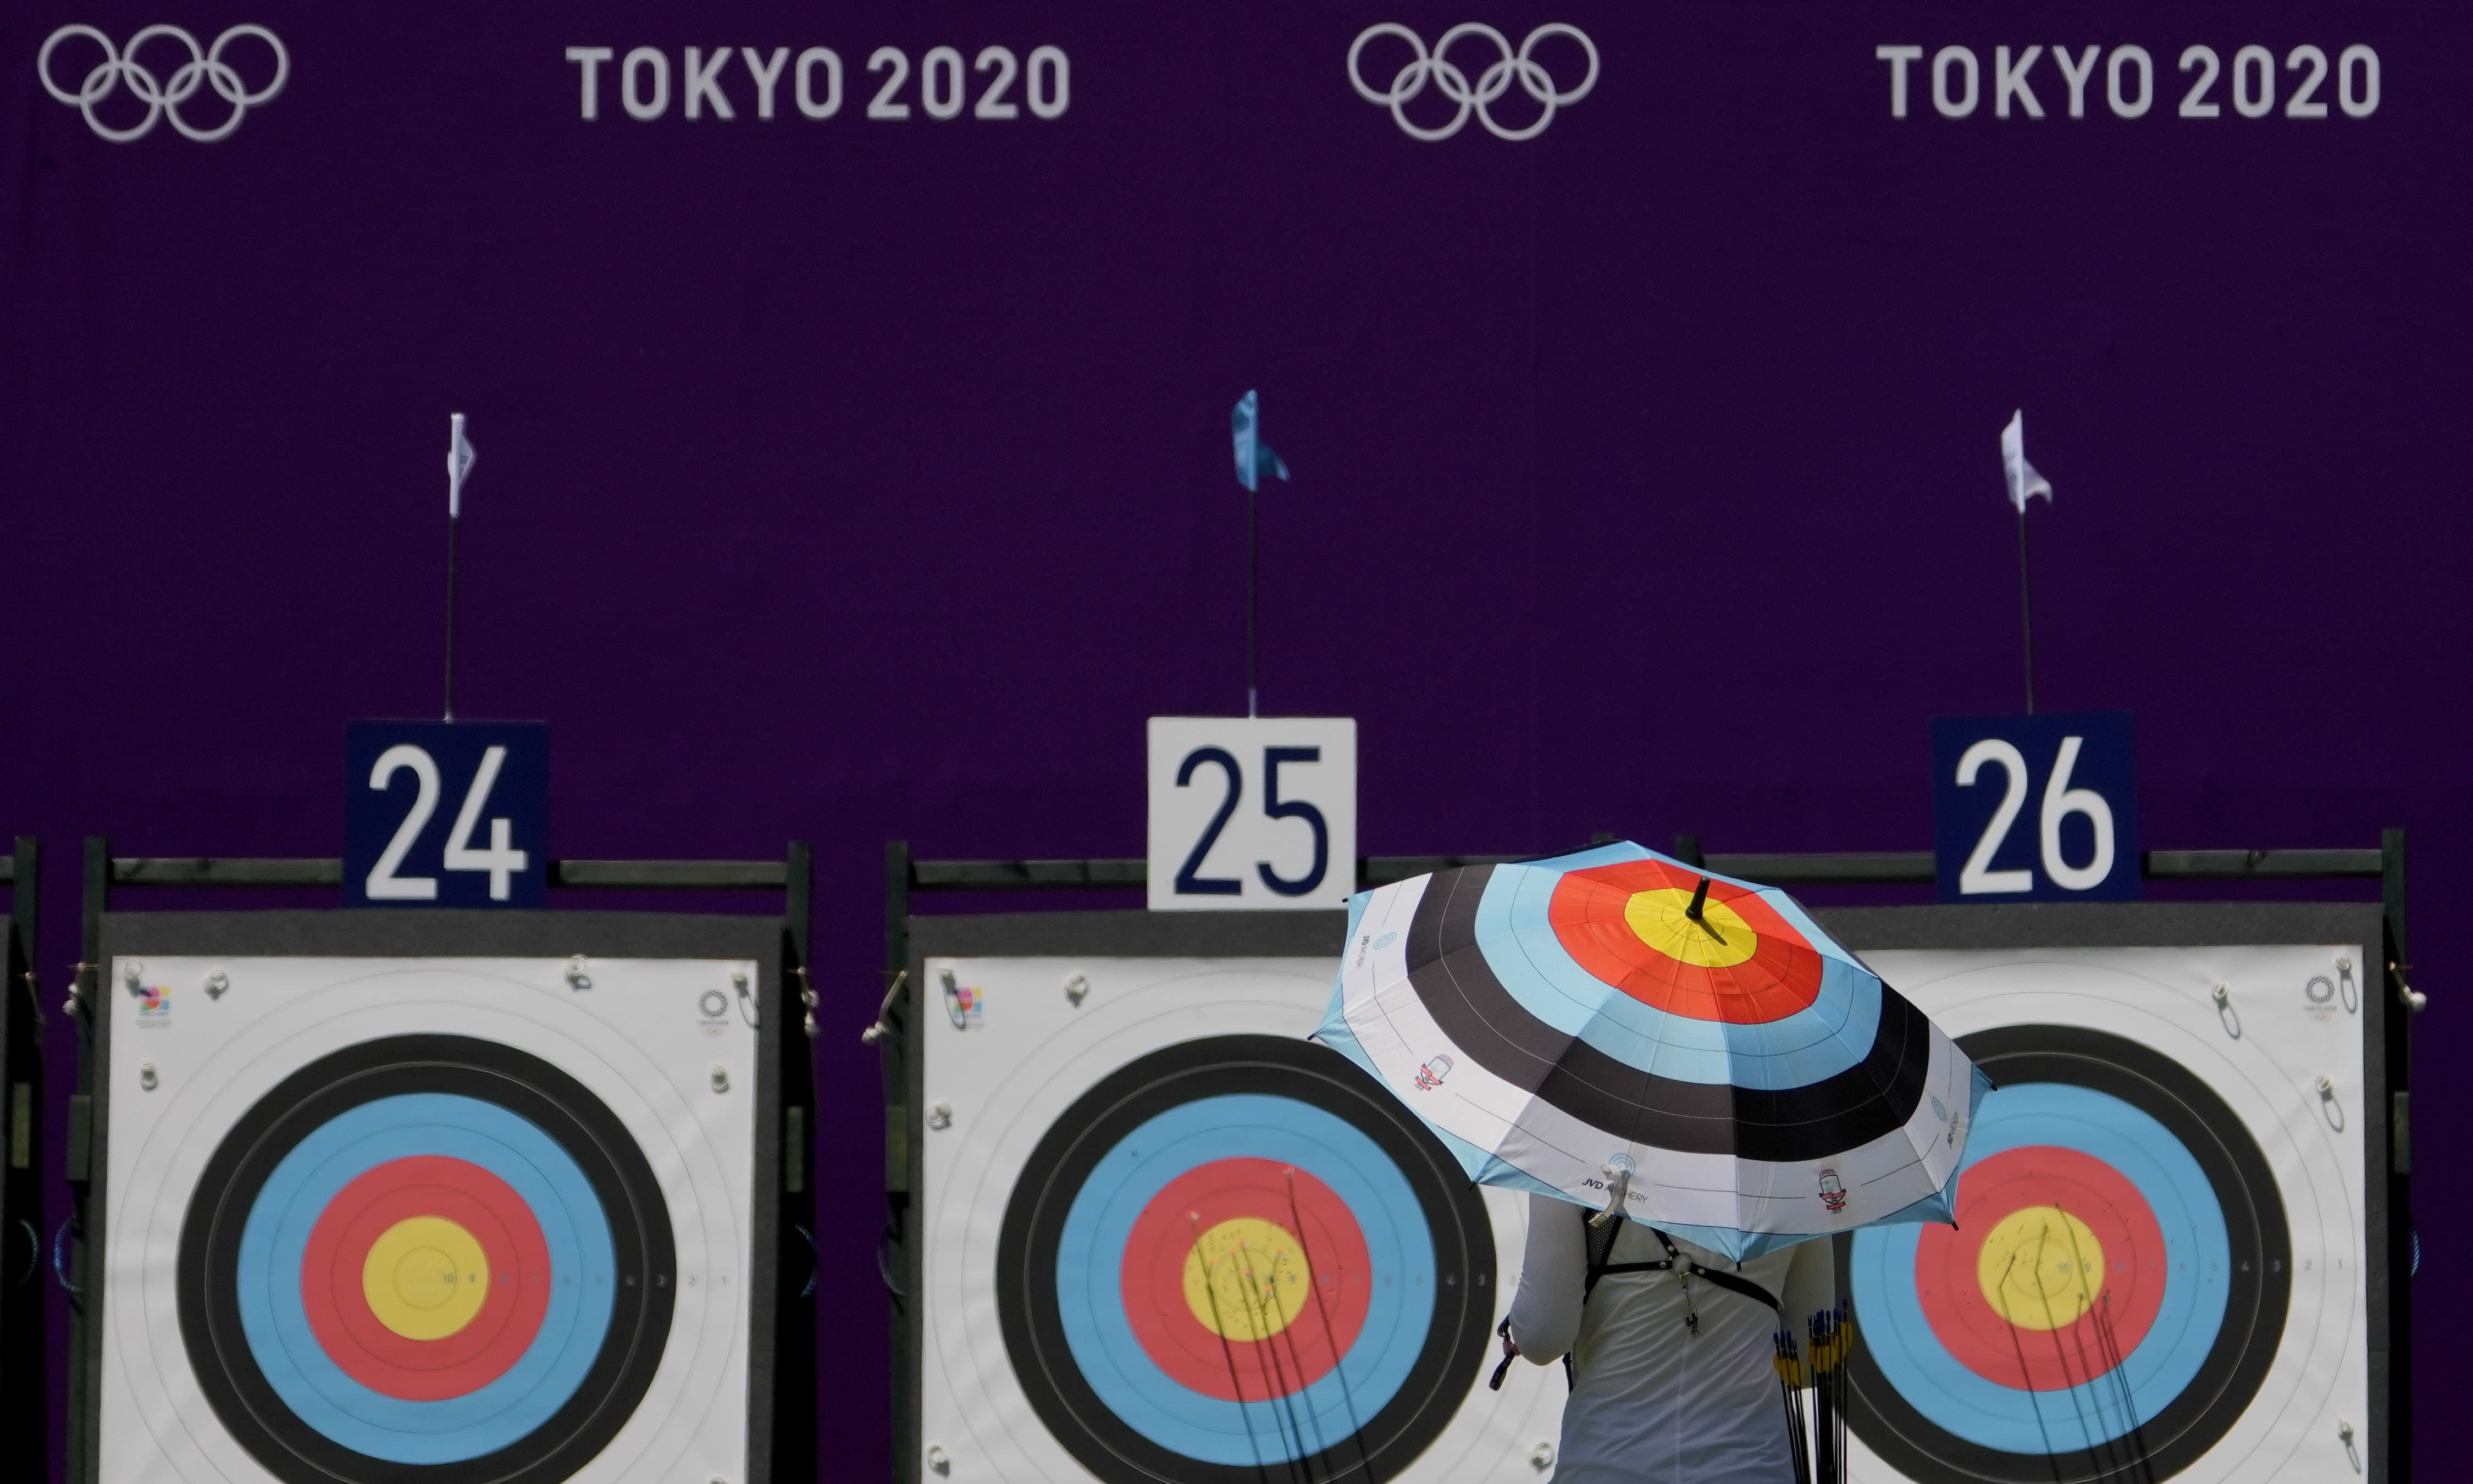 An athlete from Ukraine walks to collect her arrows as she practices for the 2020 Summer Olympics at Yumenoshima Park Archery Field, on Sunday, in Tokyo. — AP